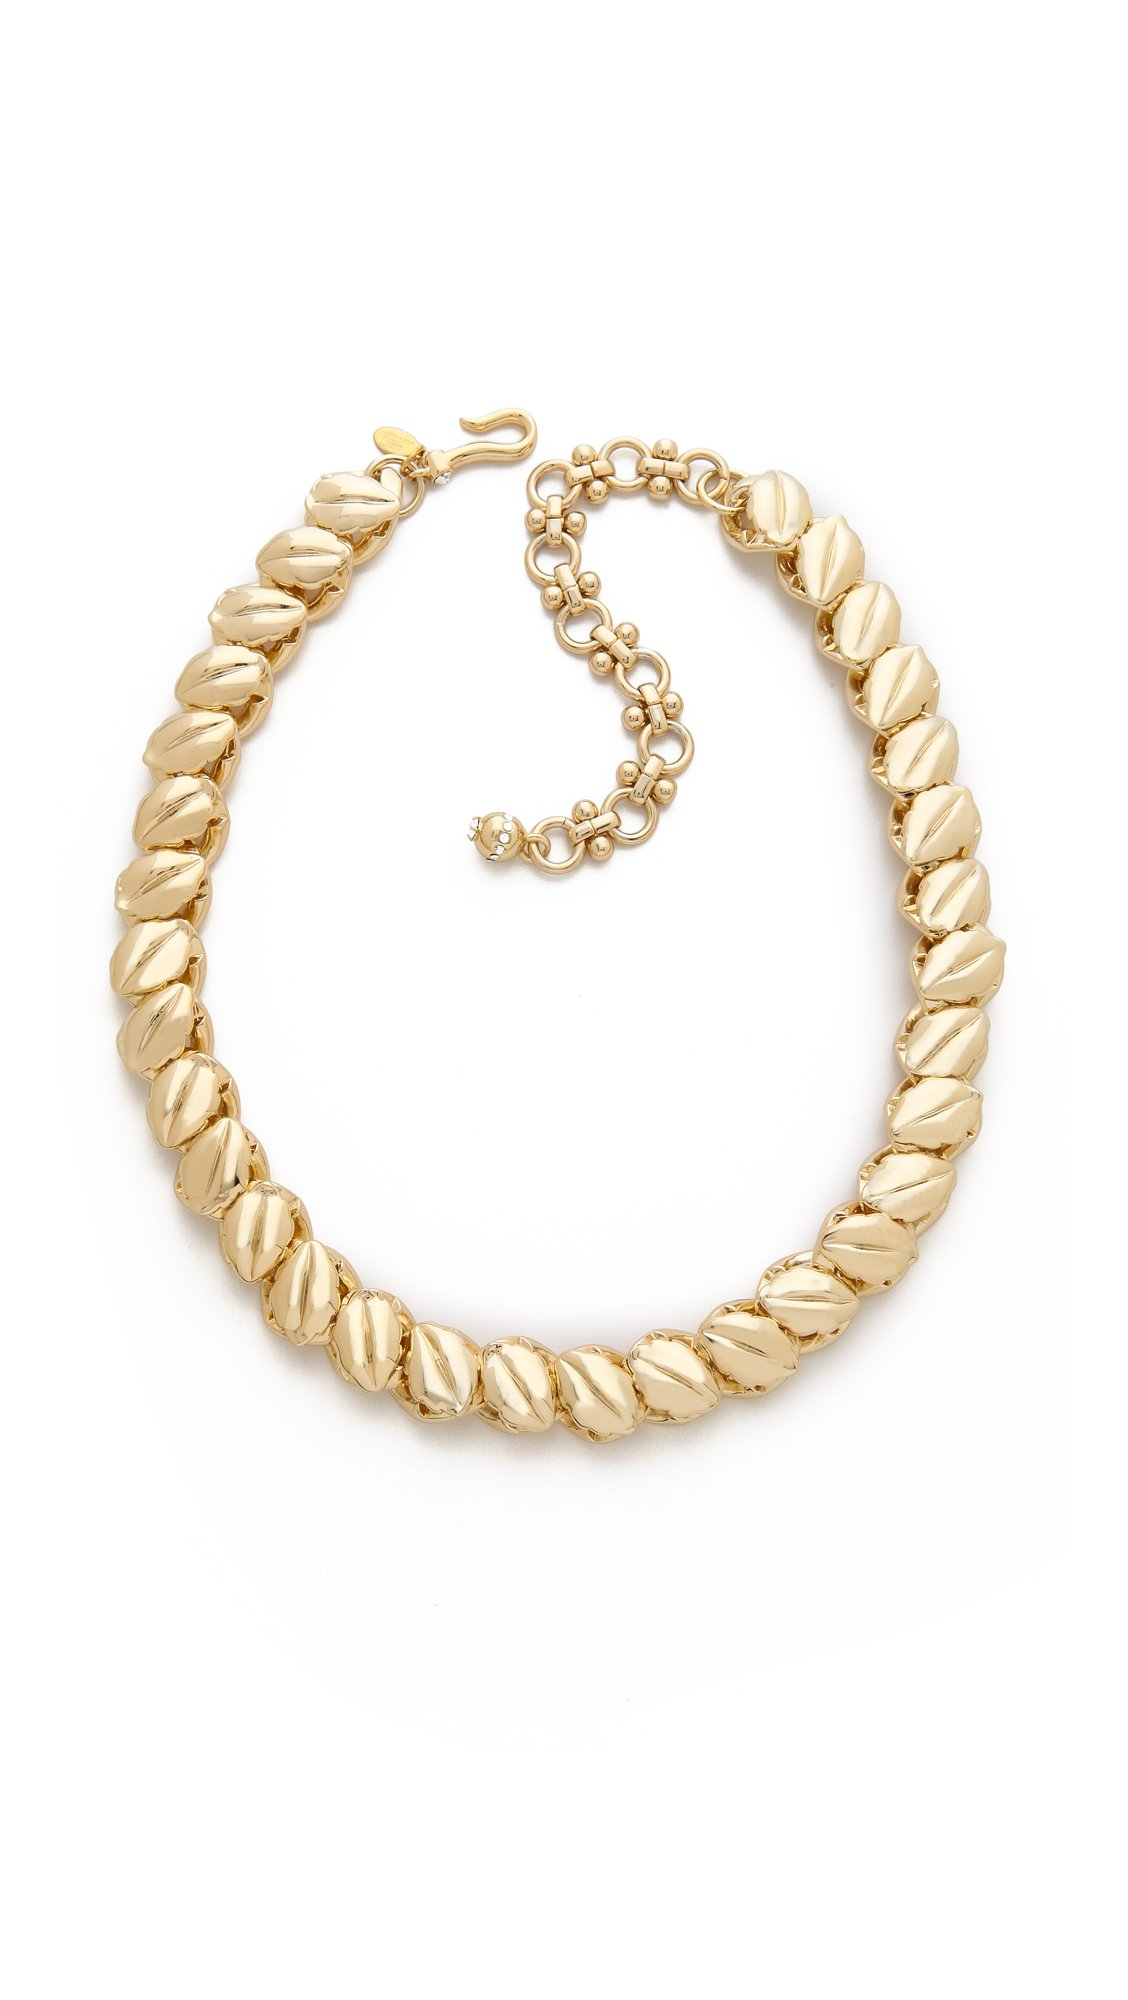 Sole Society Womens Textured Overd Chain Necklace Gold One Size From Sole Society 18LHqD